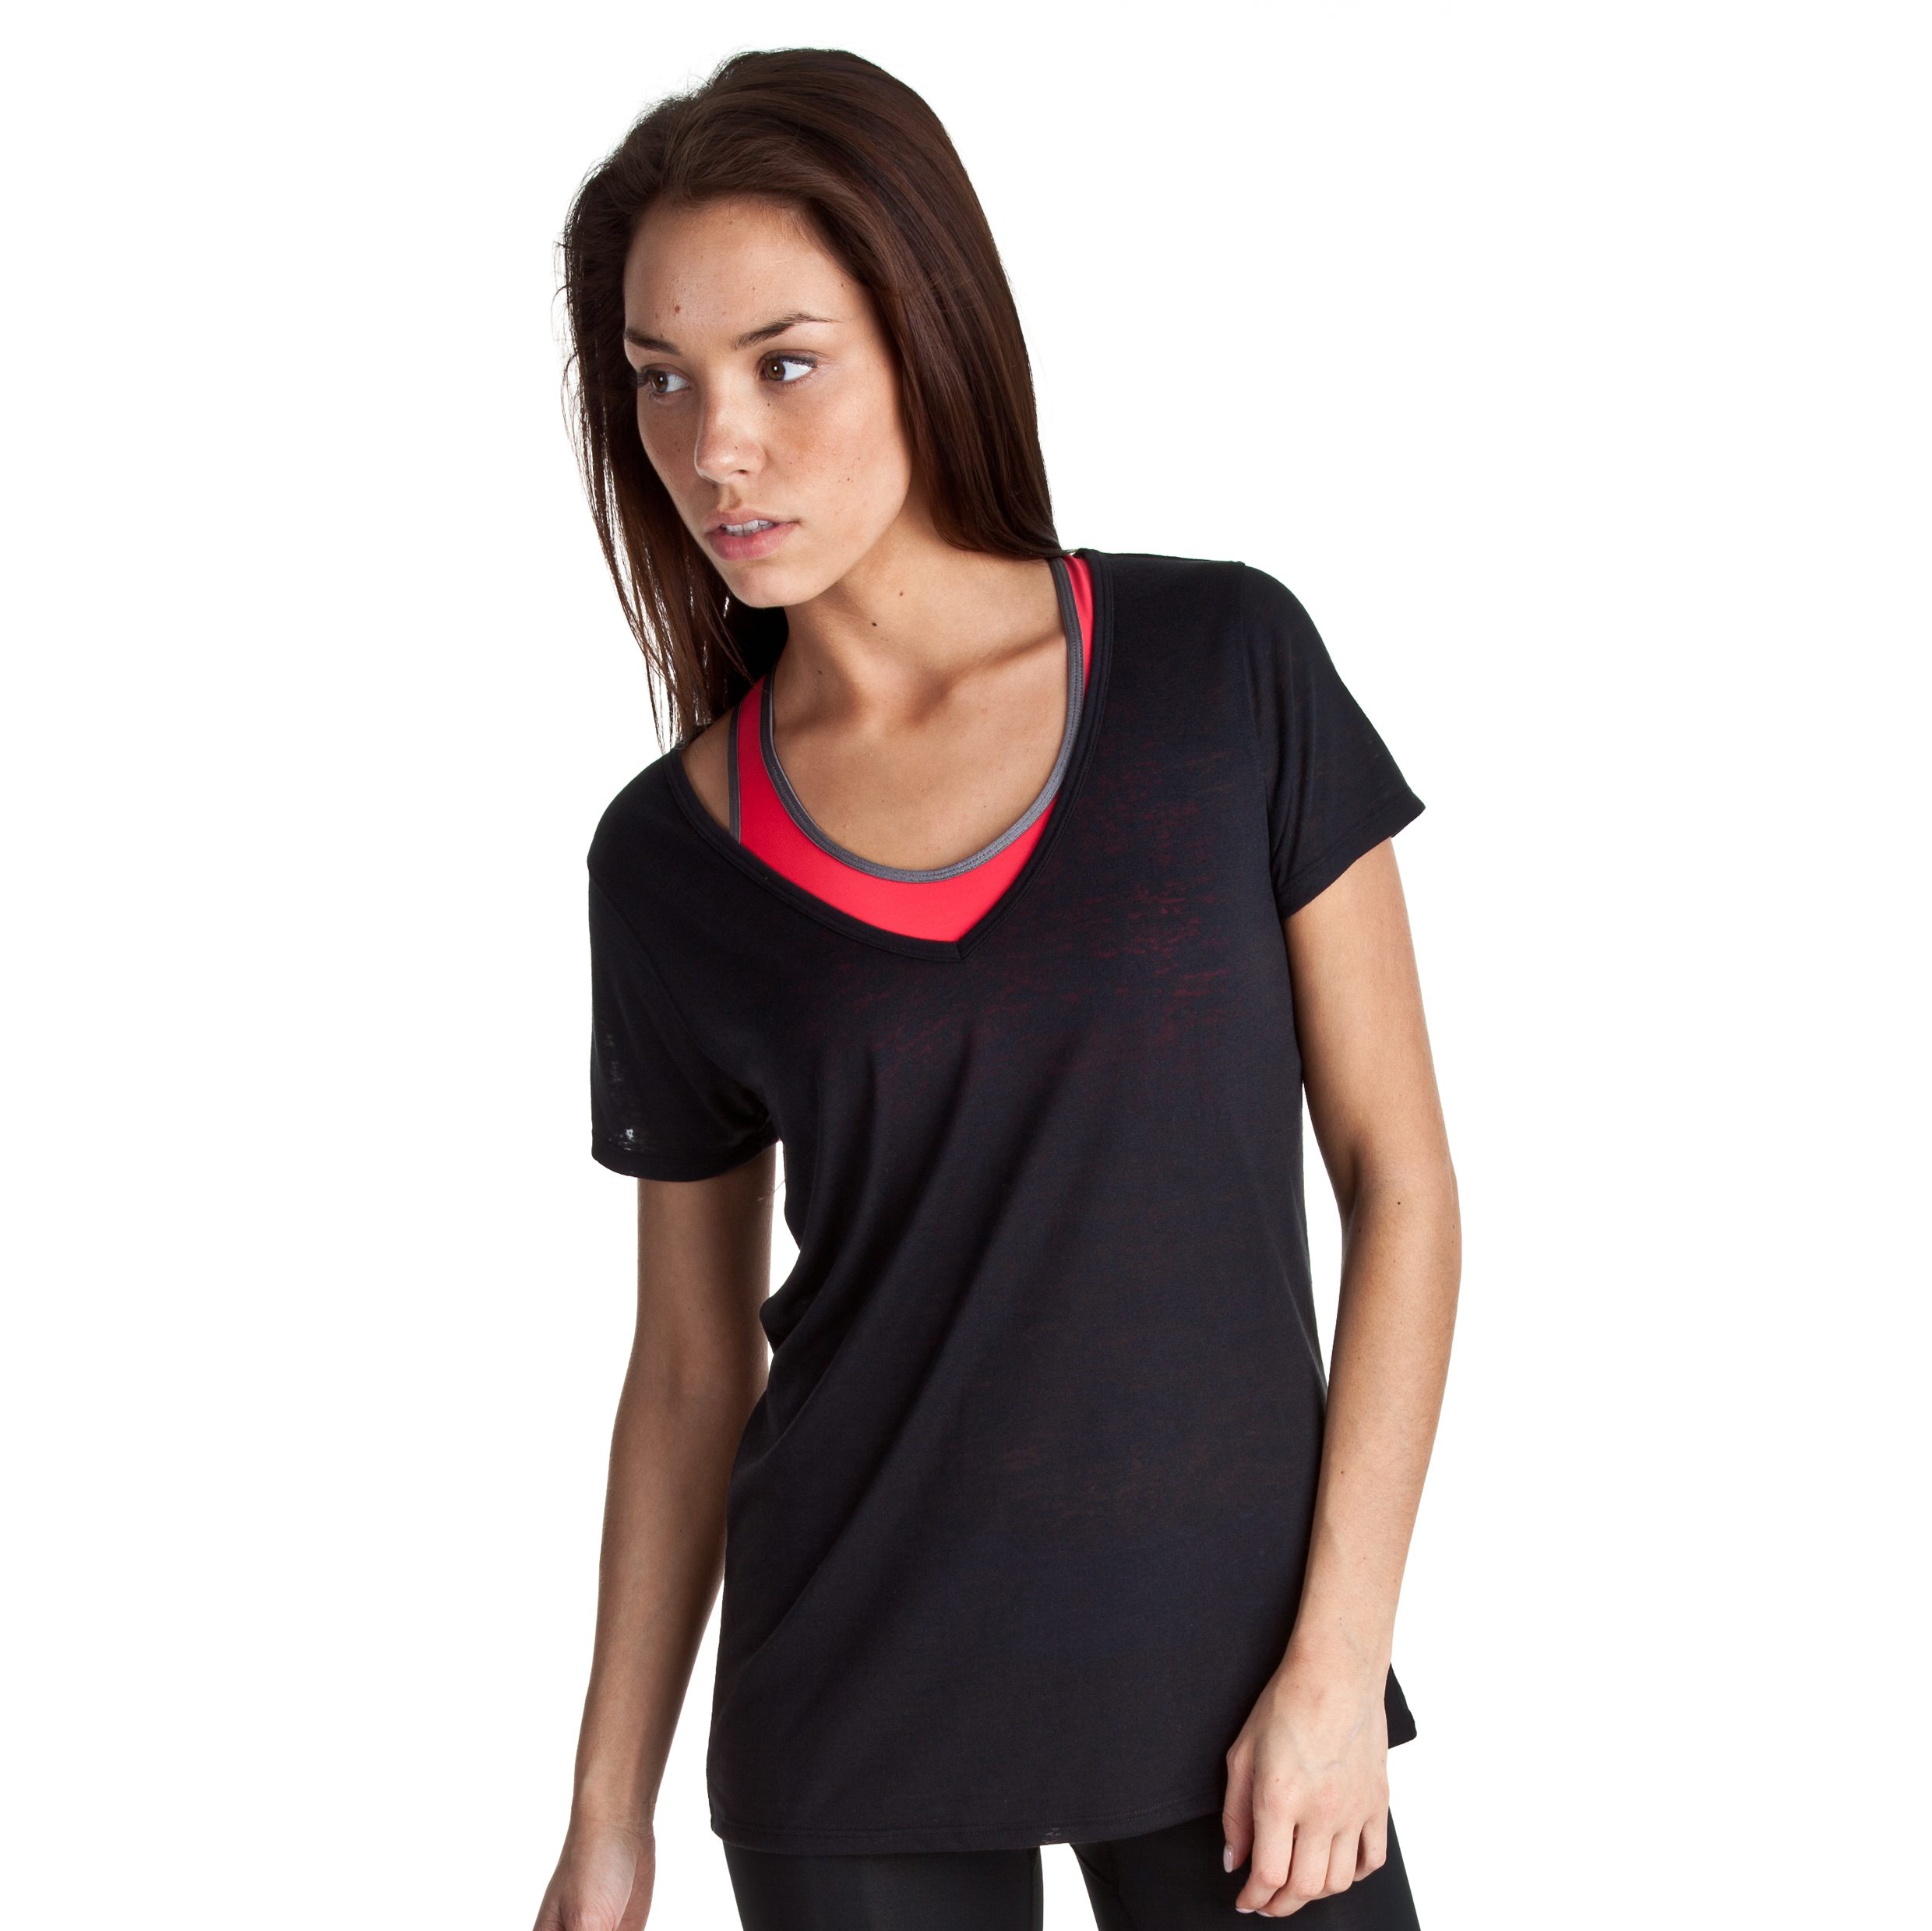 Under Armour Achieve Burnout T - Black/Steel - Womens